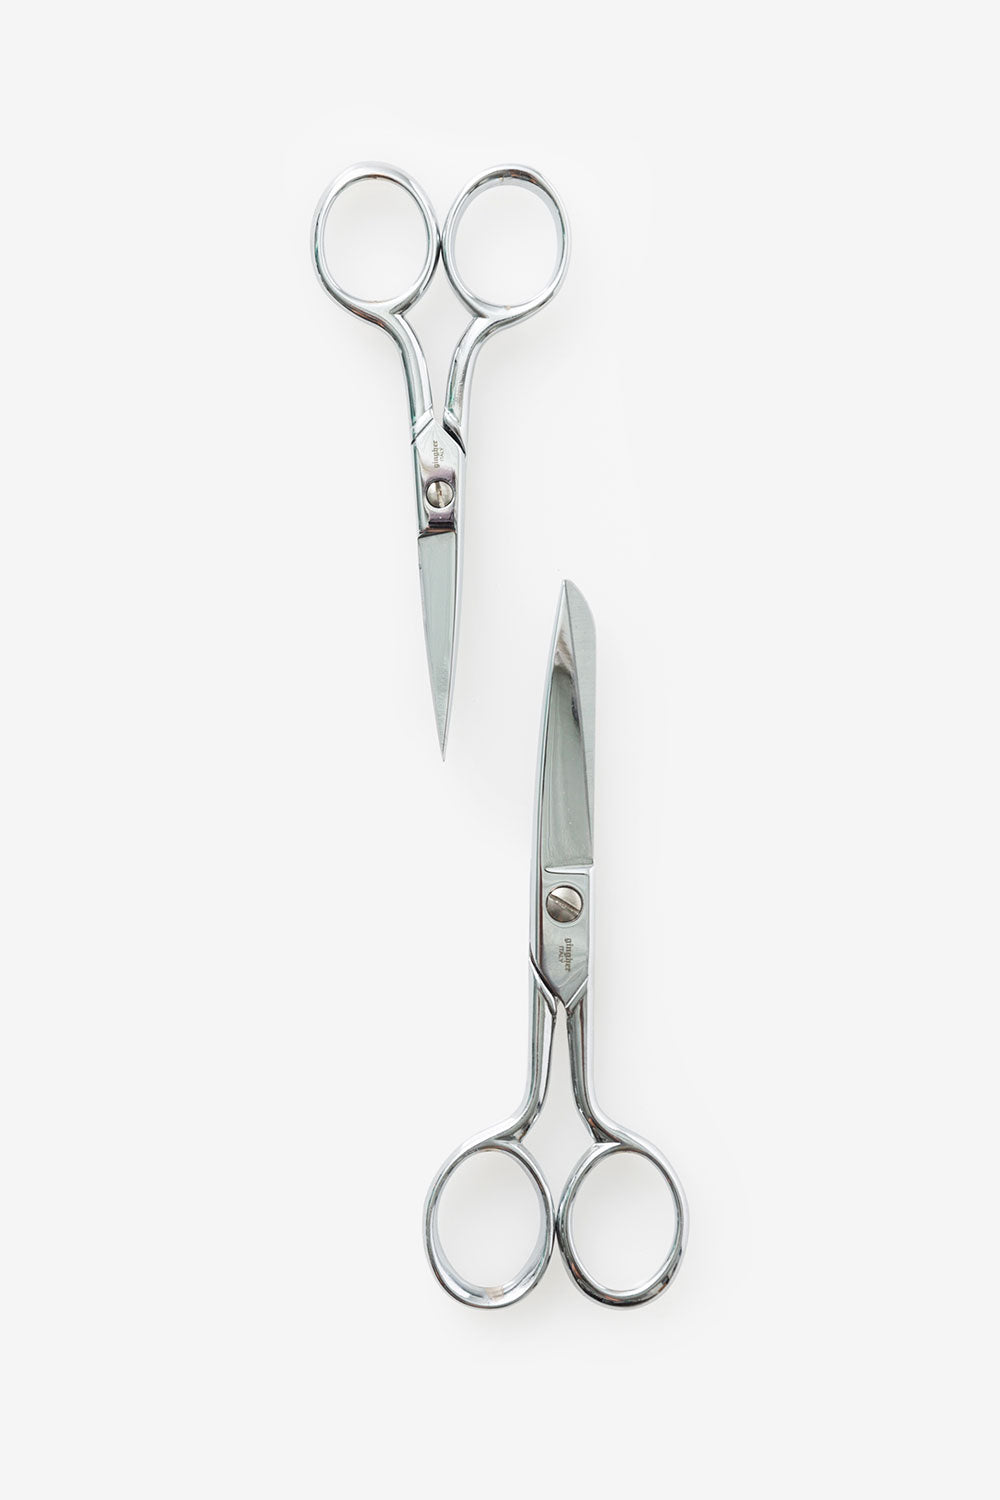 The School of Making Classic Embroidery Scissors Gingher Sewing Tools